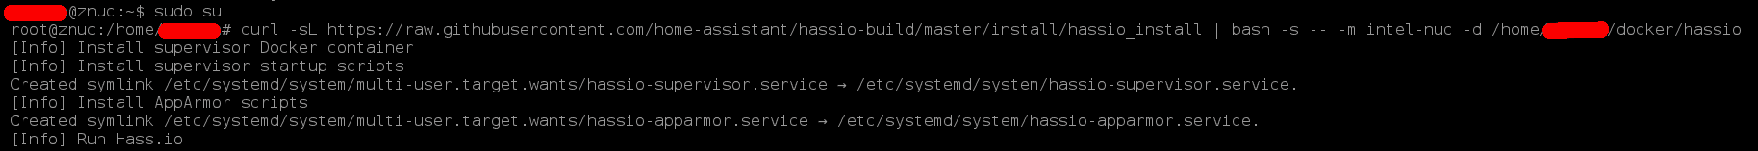 Install HASS io on Docker - Run HASS io on Ubuntu / Debian Systems